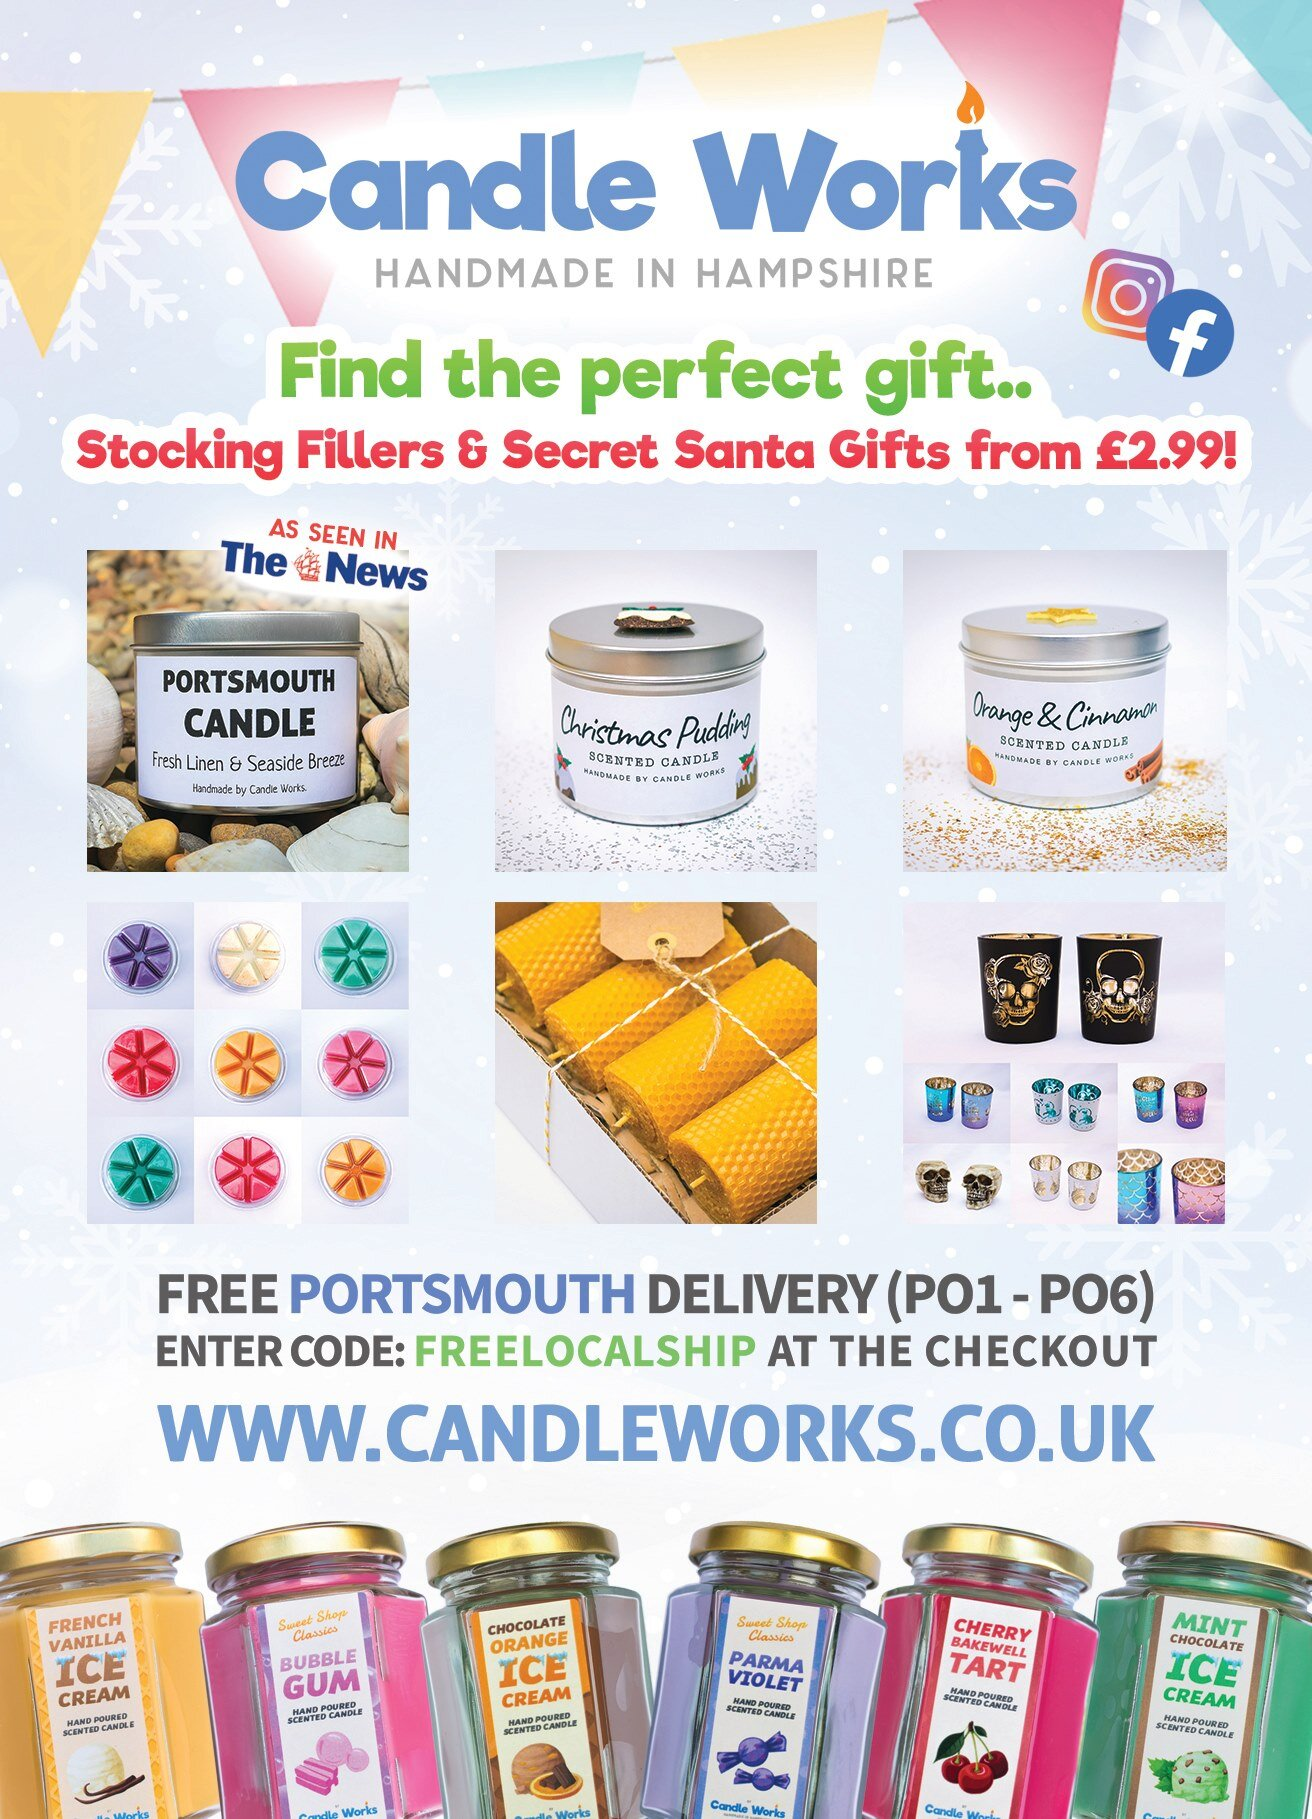 Find the perfect gift this Christmas!